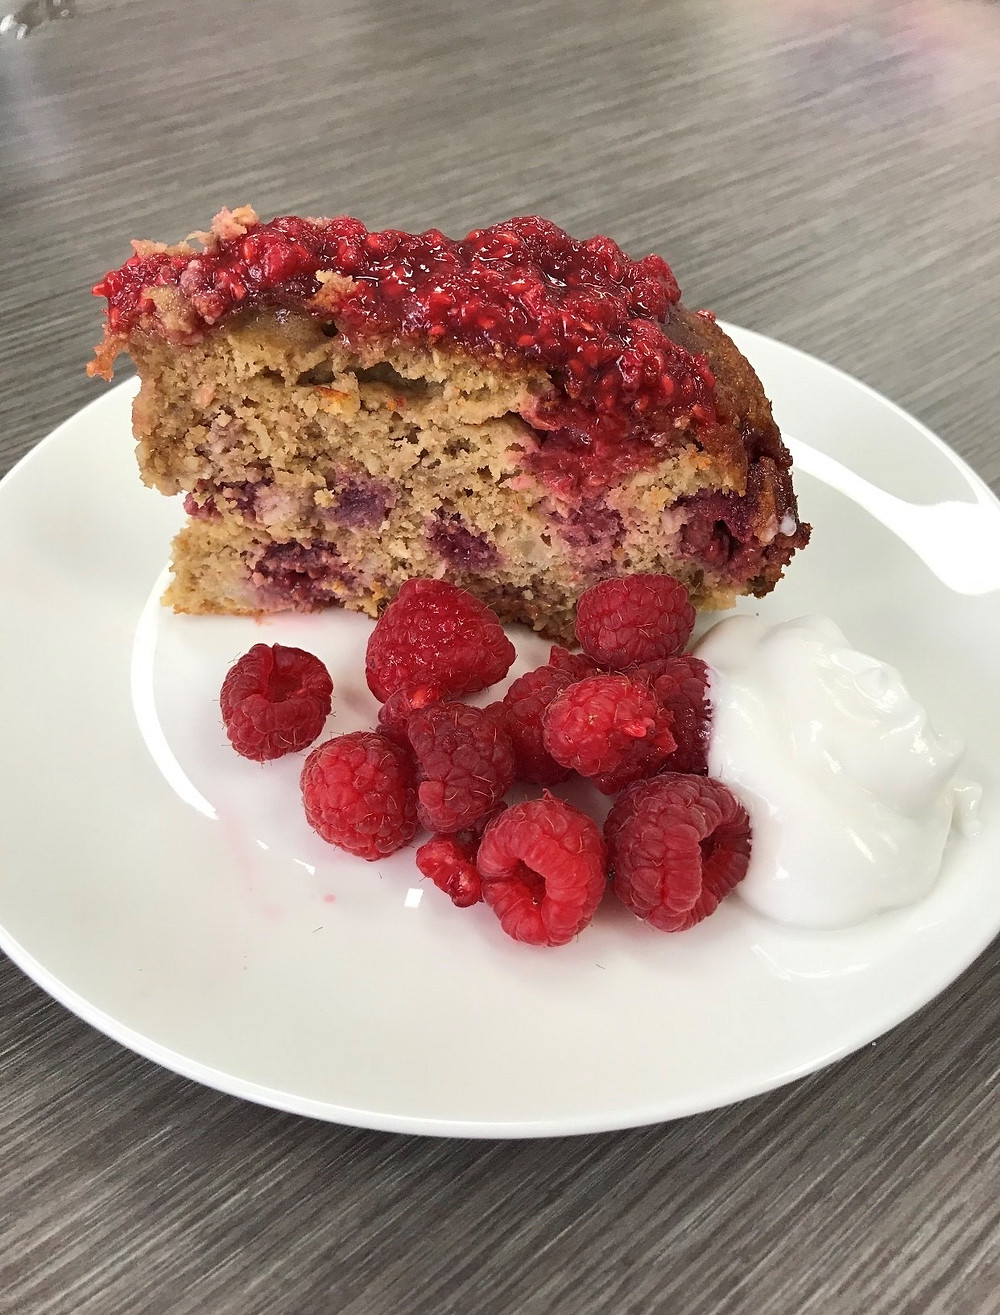 healthy banana cake, raspberries, healthy baking Low in gluten, dairy free, nut free and refined sugar free